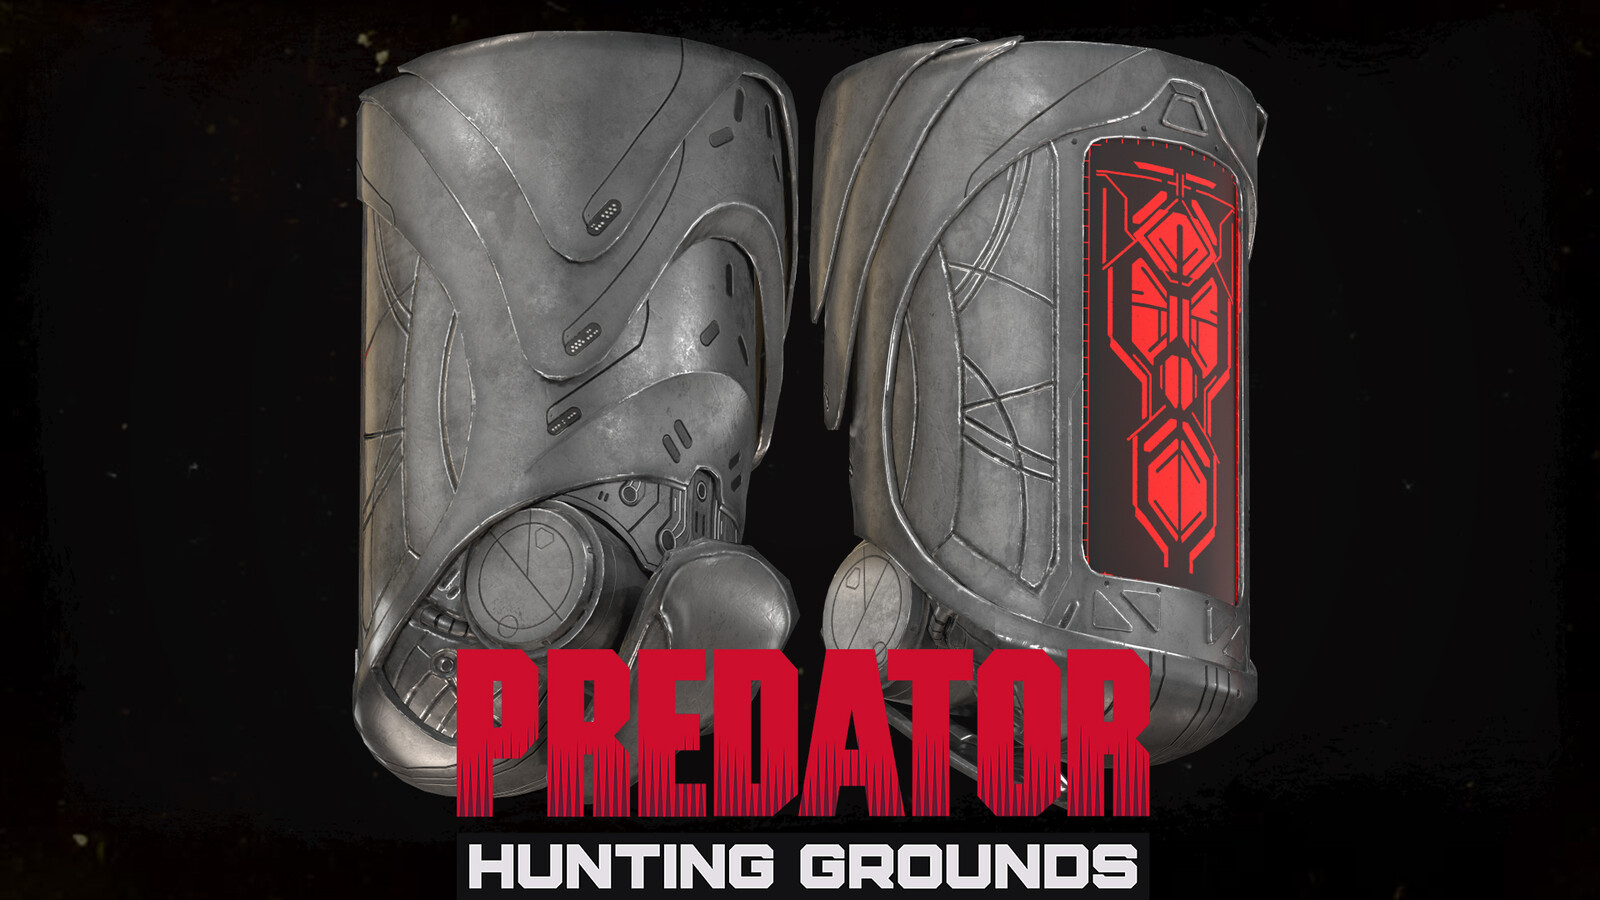 Predators - Audio decoy